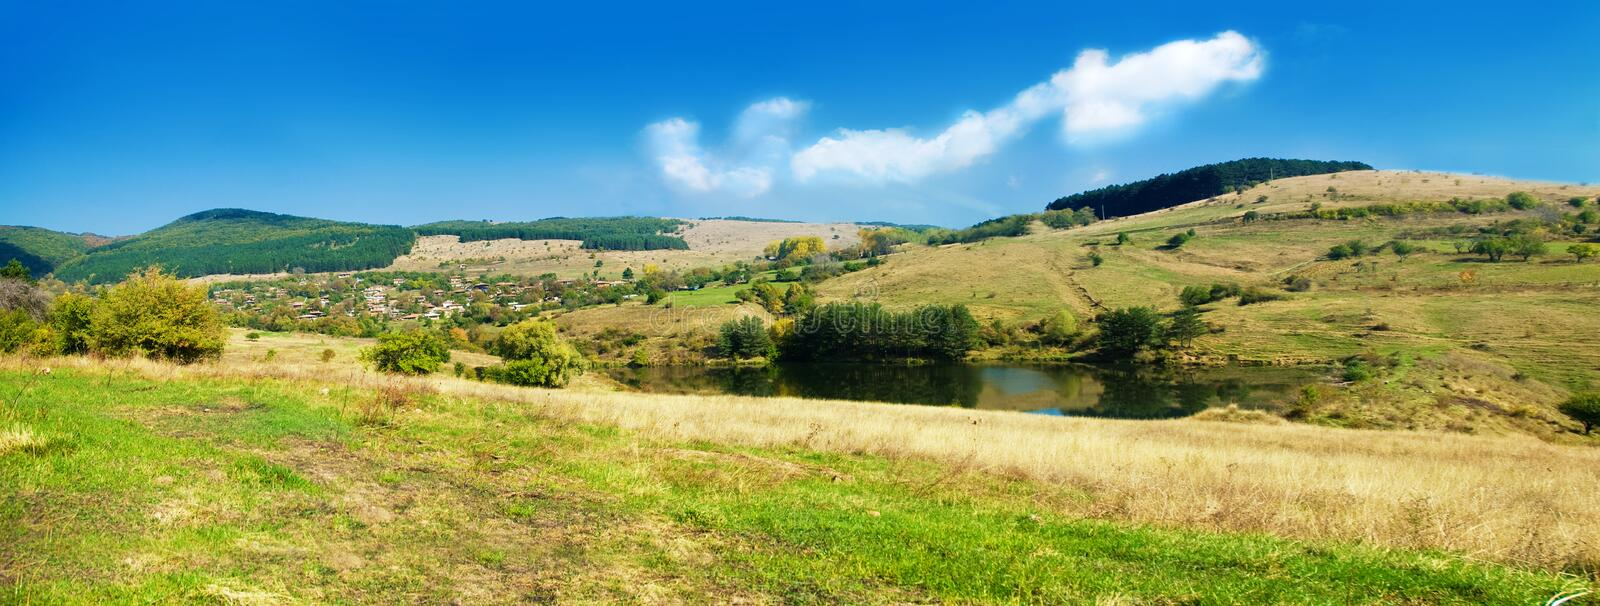 Panoramic nature royalty free stock photography